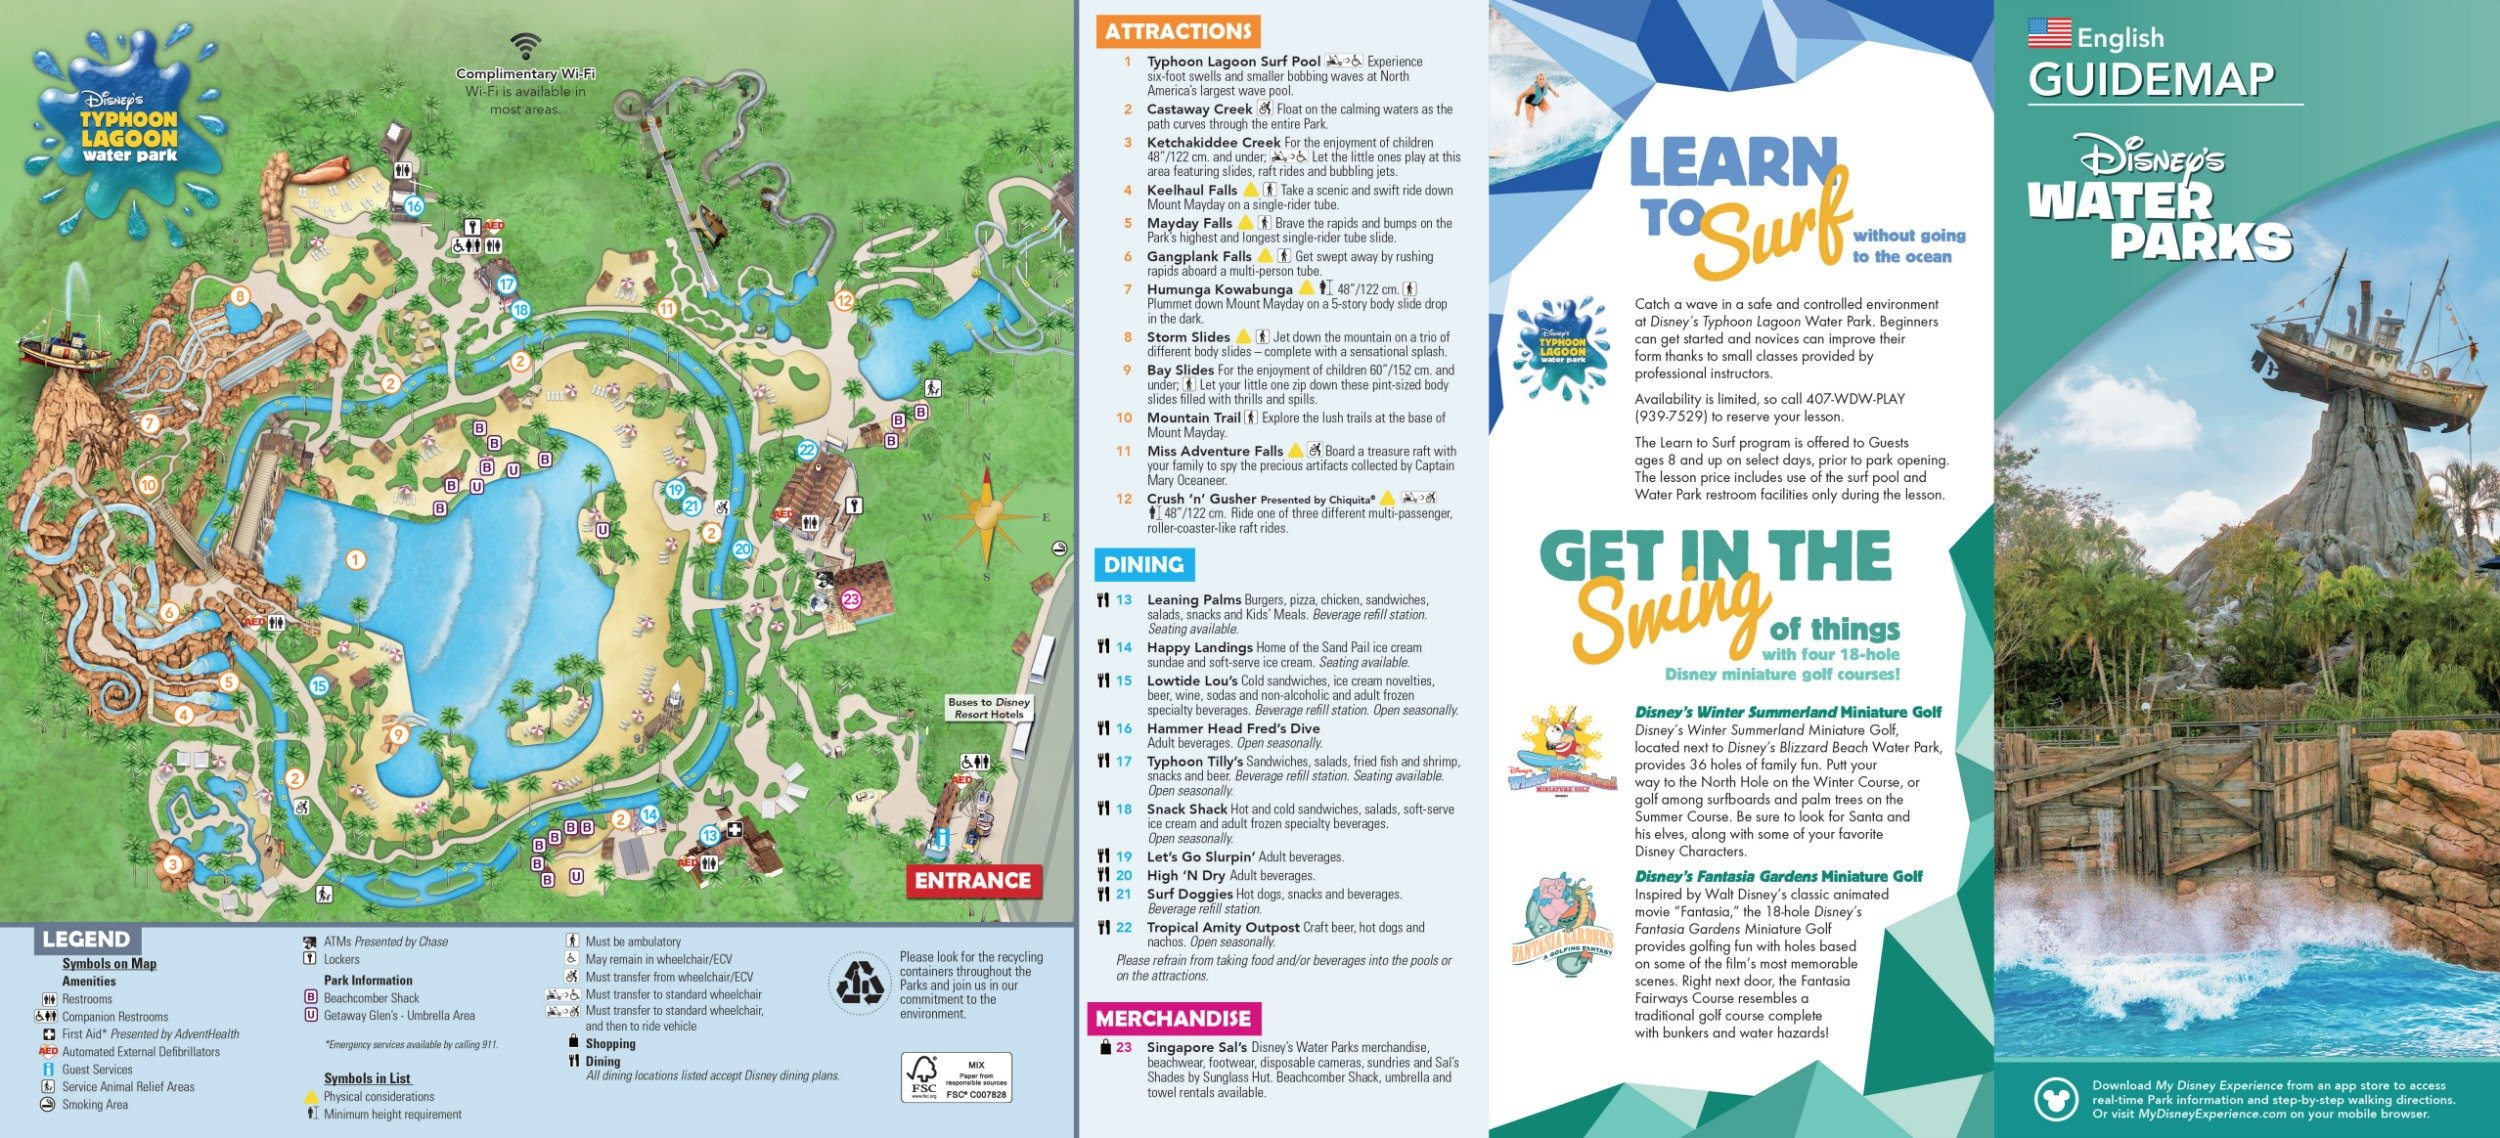 Lagoon Park Map Disney's Typhoon Lagoon Water Park Map